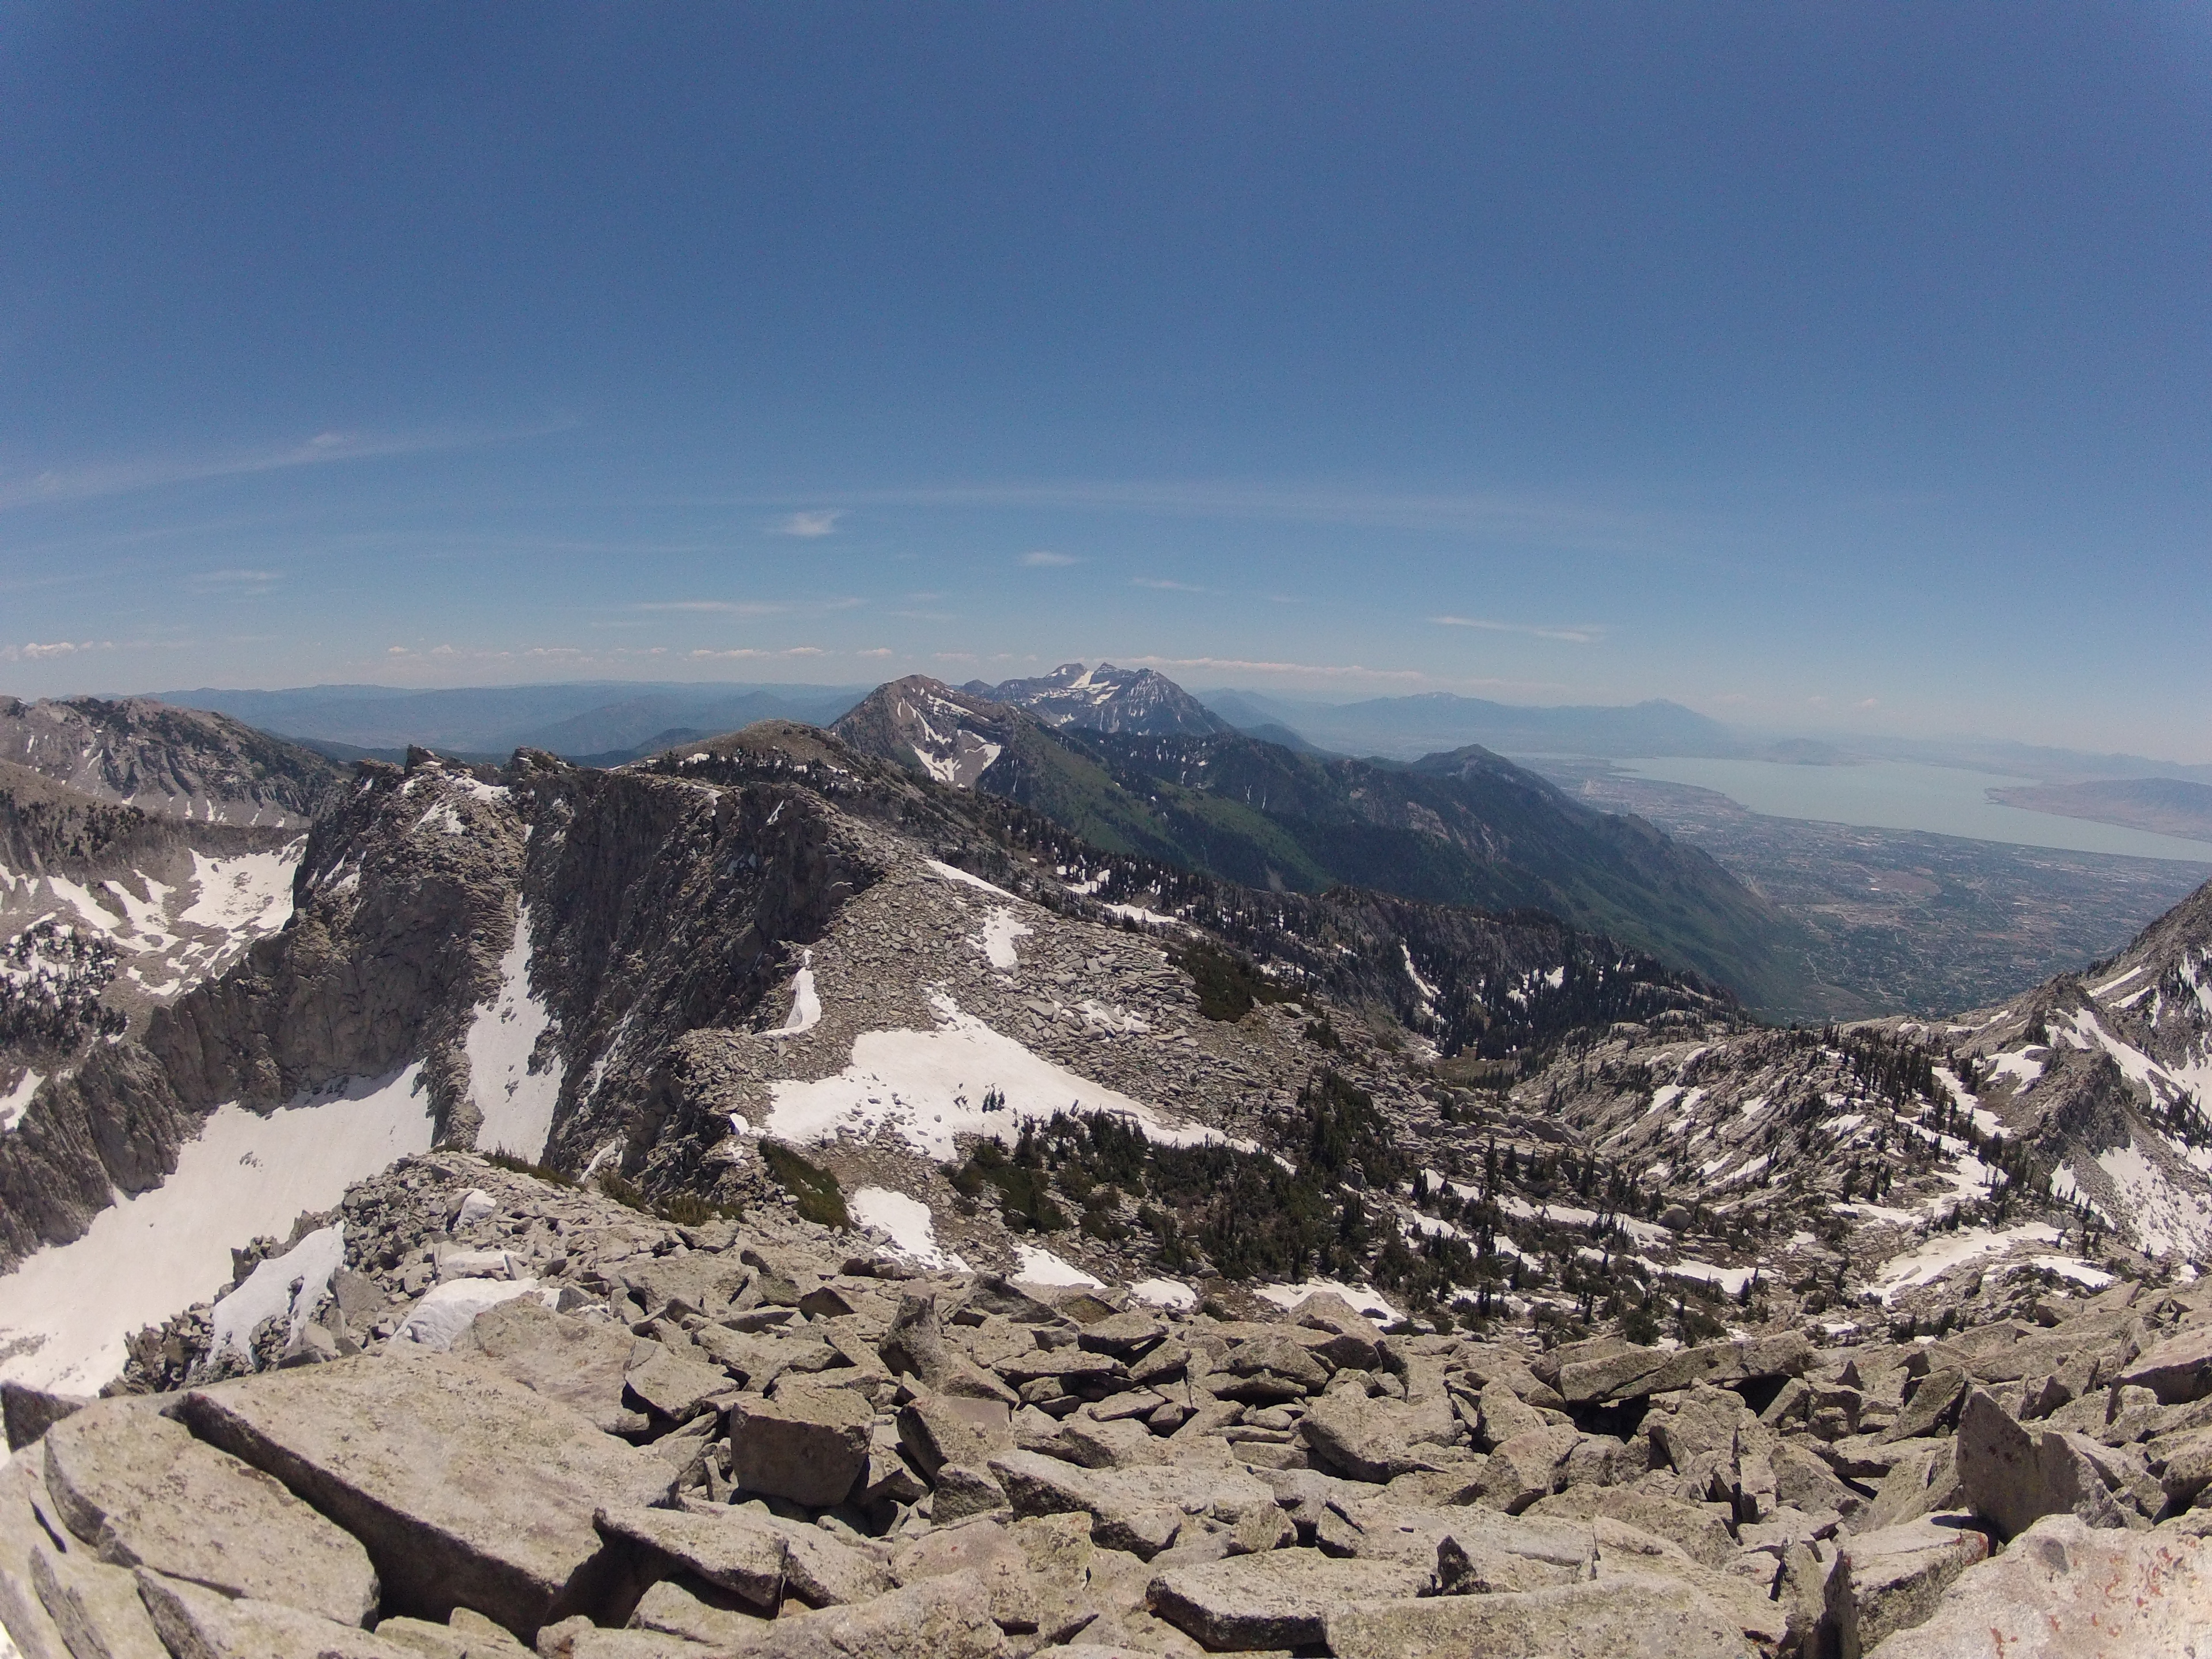 Great view of Wasatch looking south towards Timp